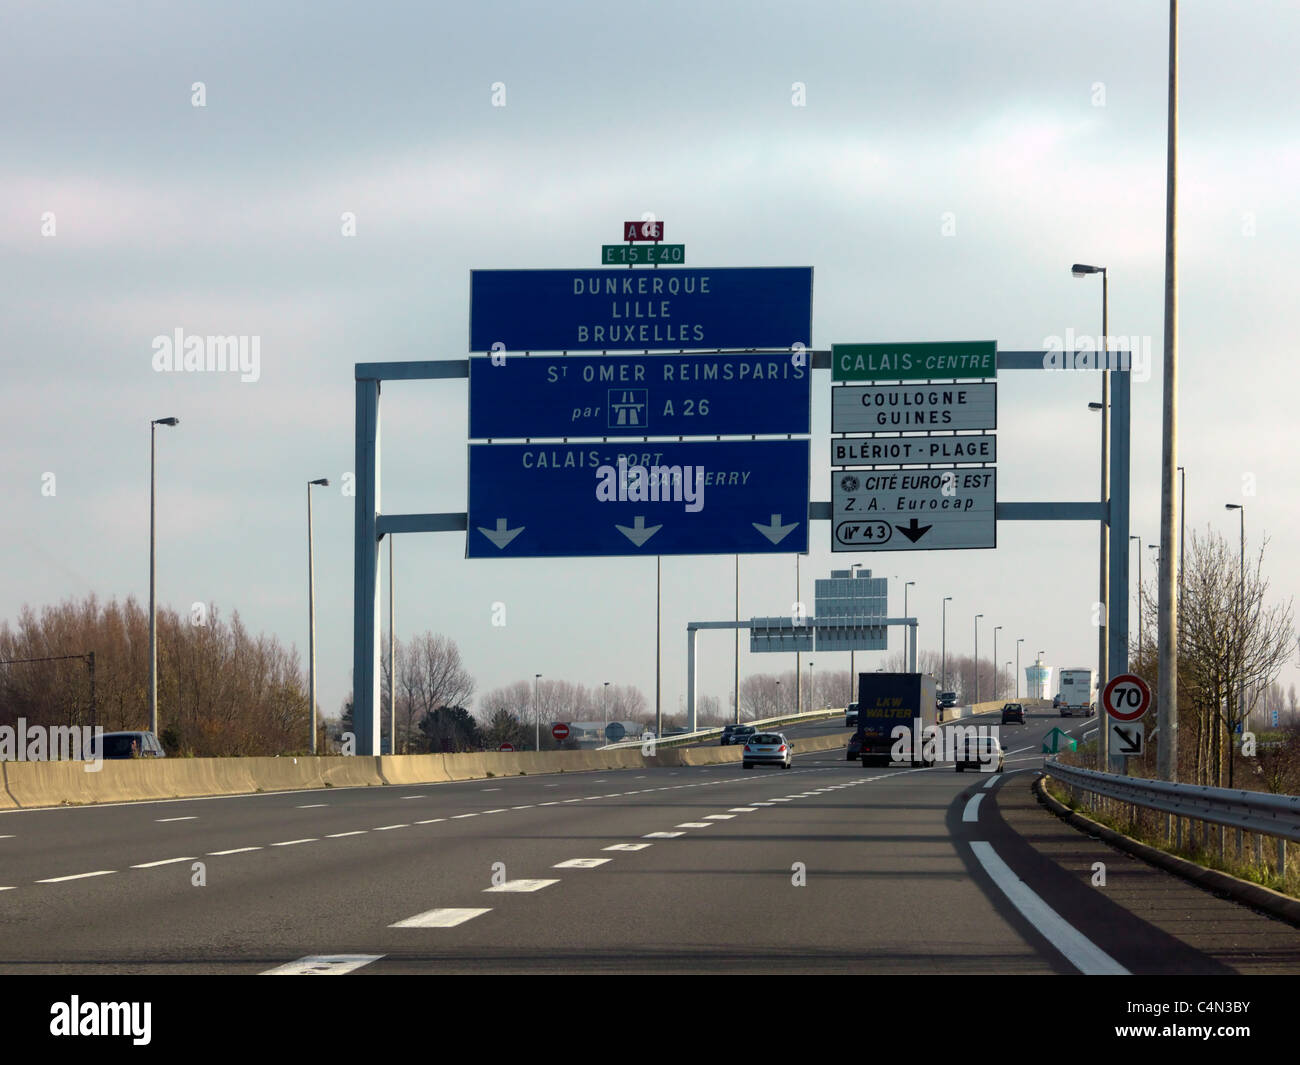 france motorway signs photos france motorway signs images alamy. Black Bedroom Furniture Sets. Home Design Ideas